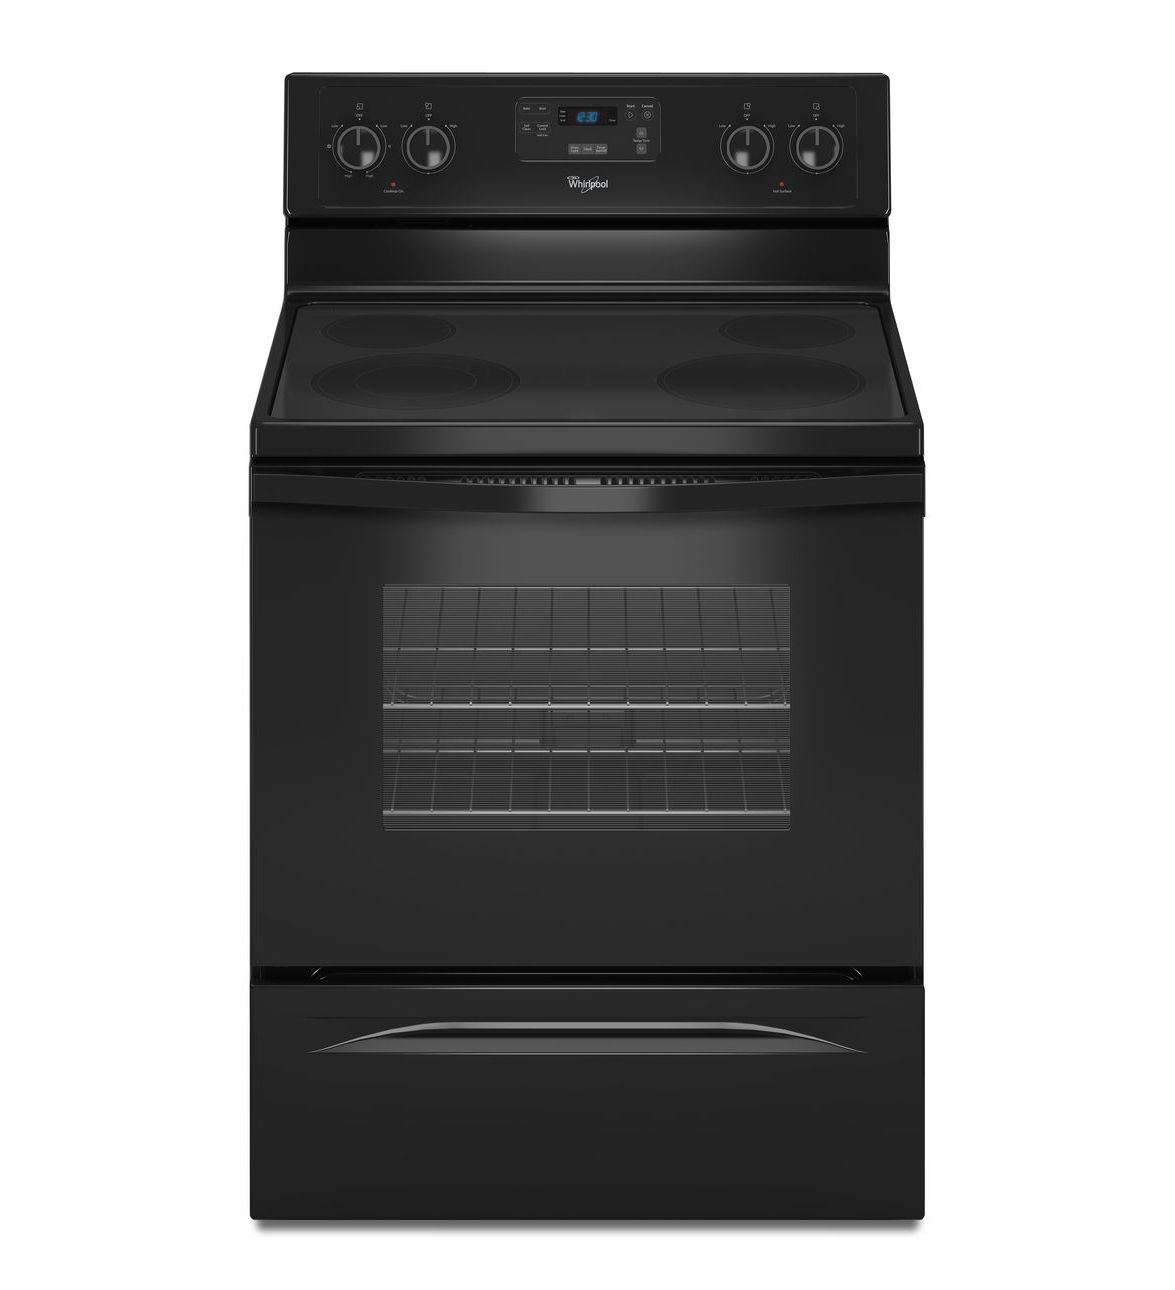 Wfe515s0eb Whirlpool 30 5 3 Cu Ft Glass Top Electric Range Black